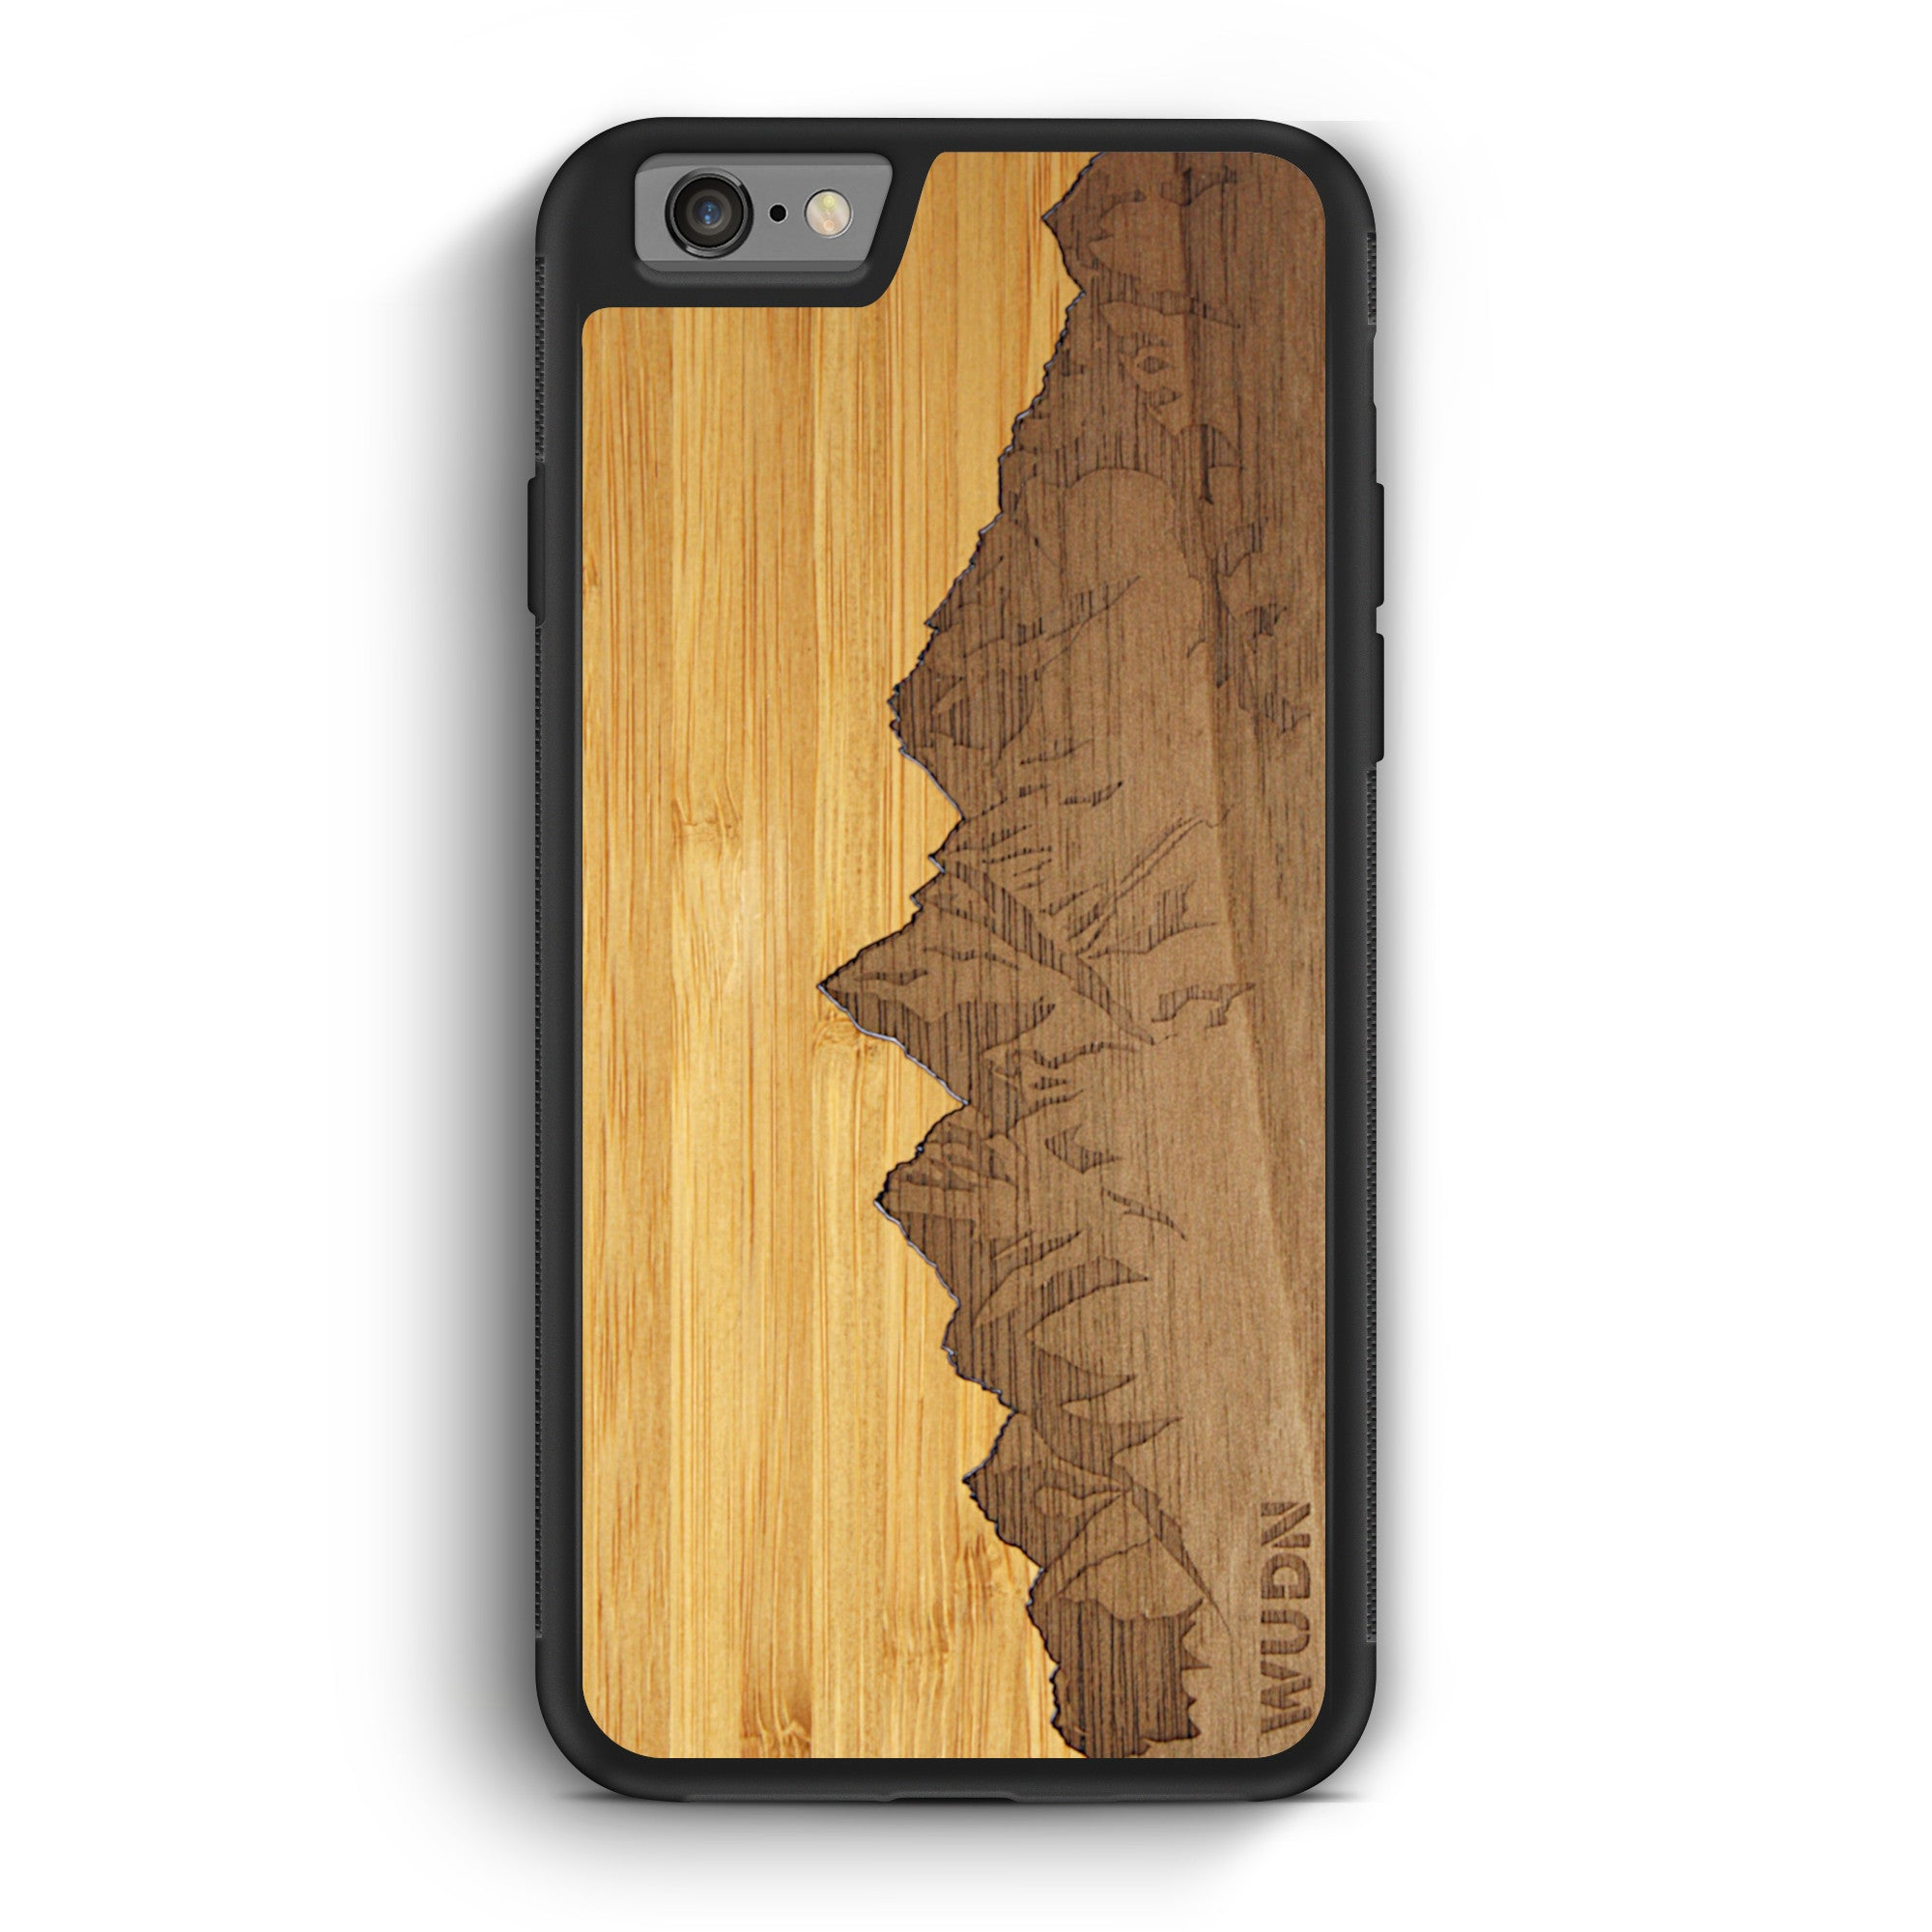 Slim Wooden Phone Case | Sawtooth Mountains Traveler, Cases by WUDN for iPhone 6 / 6s